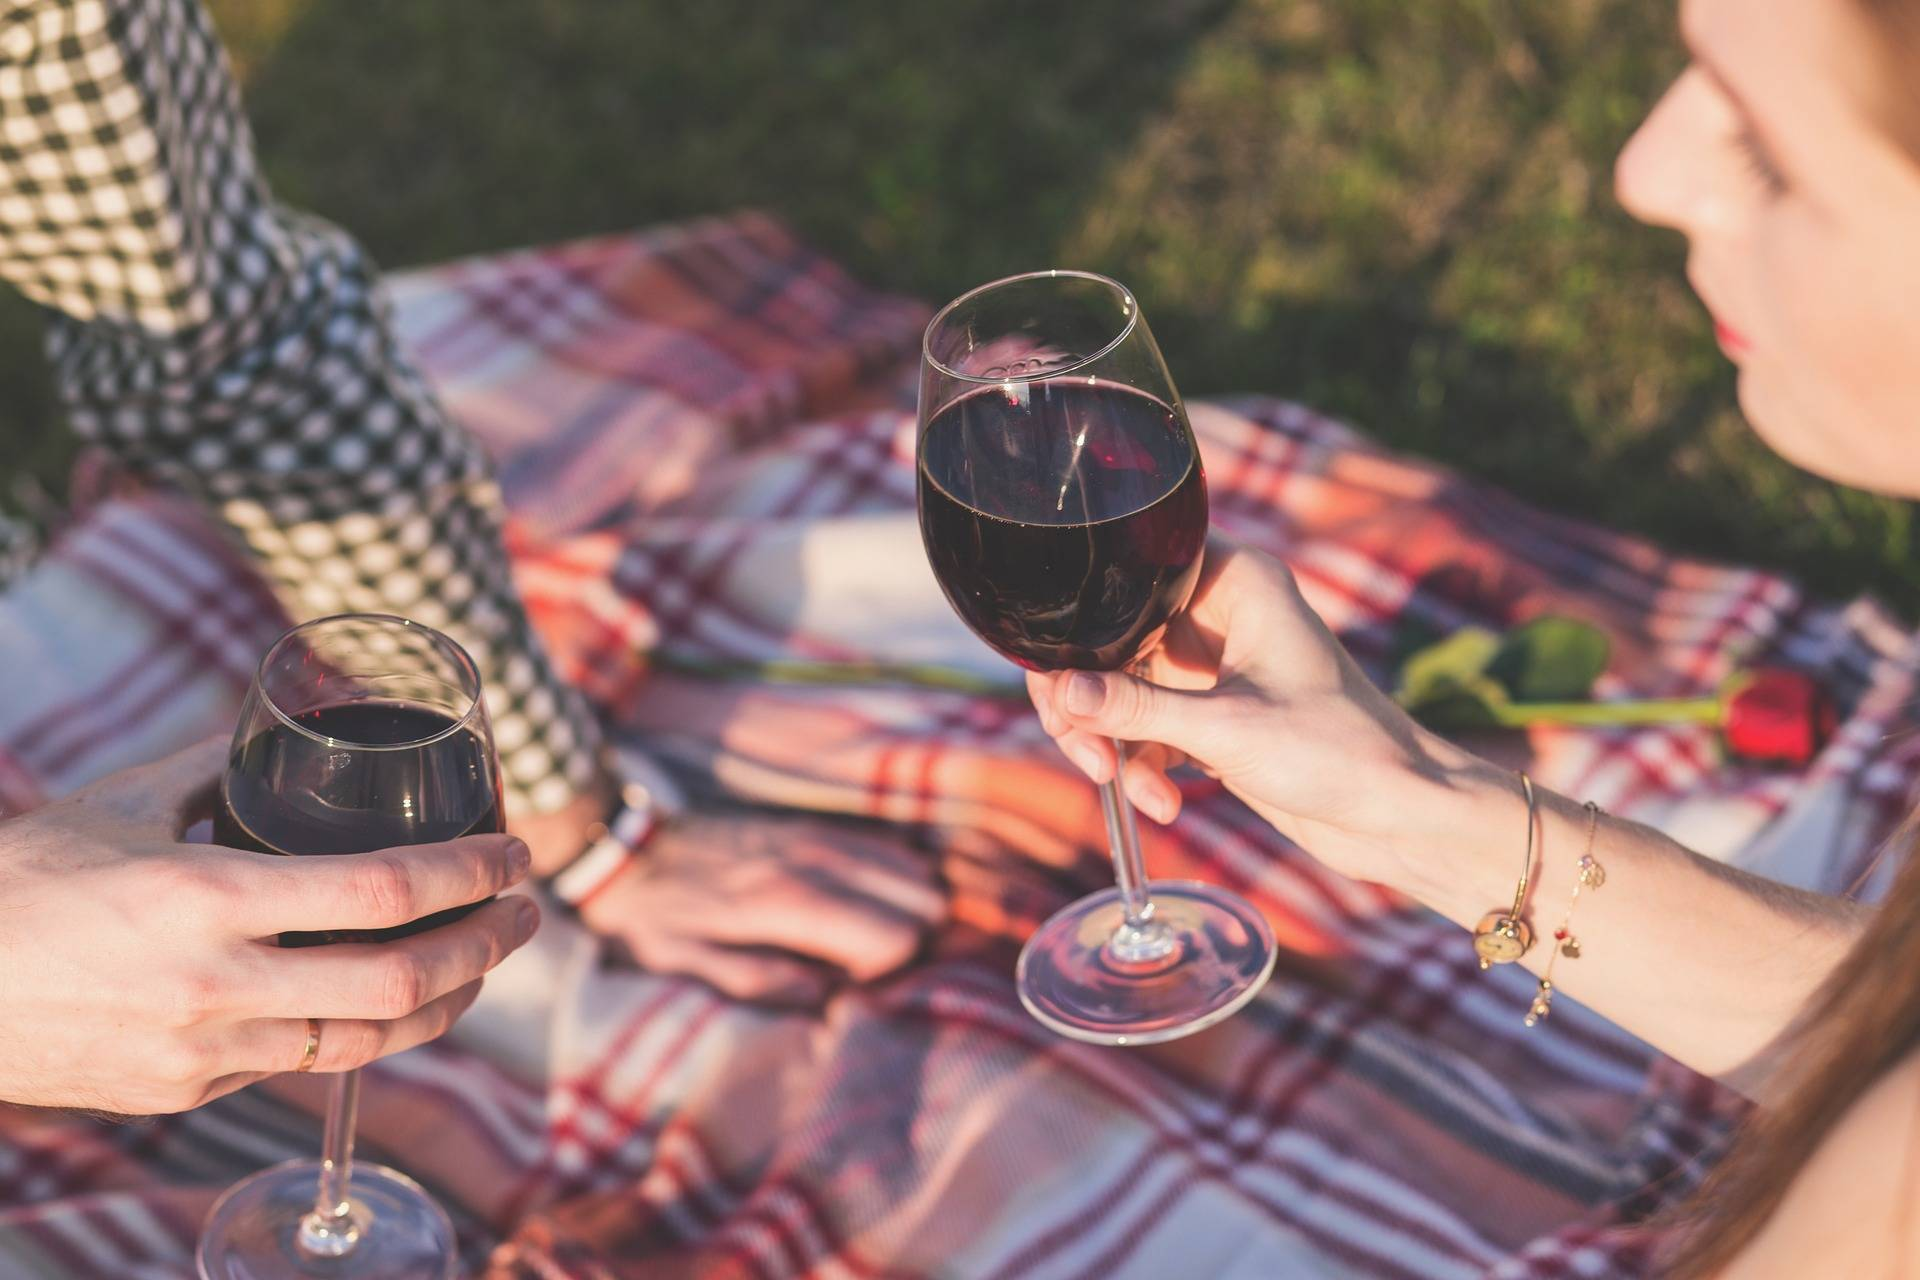 b44cc12b79938474d669_wine_glass_picnic_blanket-1853380_1920.jpg